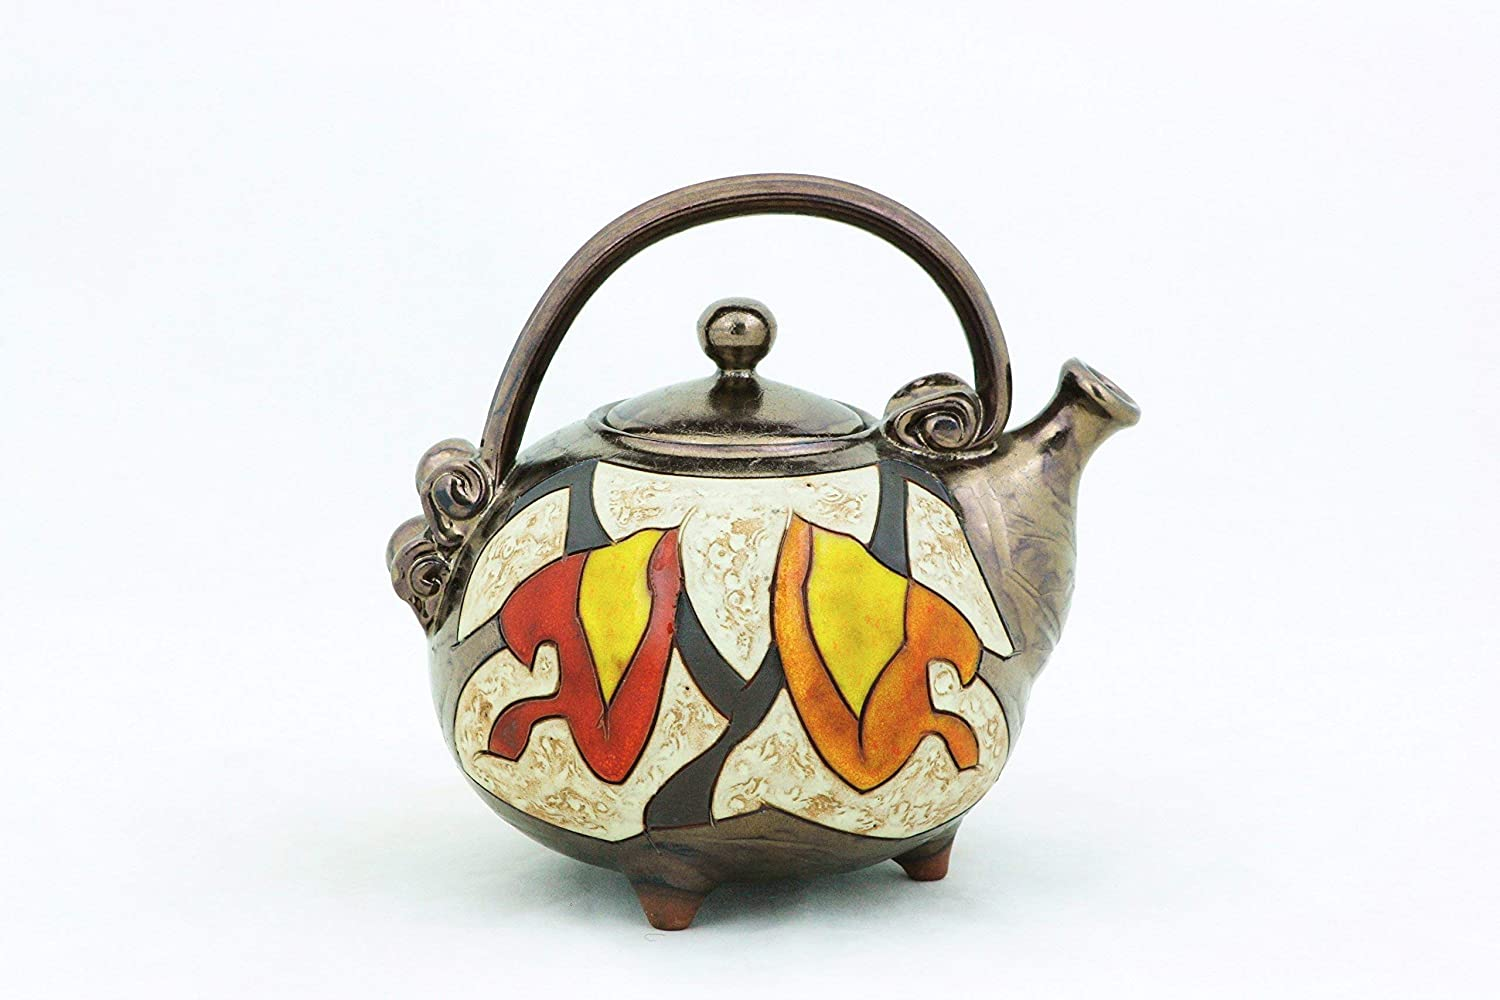 Ceramic handmade teapot Max 62% OFF Art Mail order Unique quirky pottery teapo